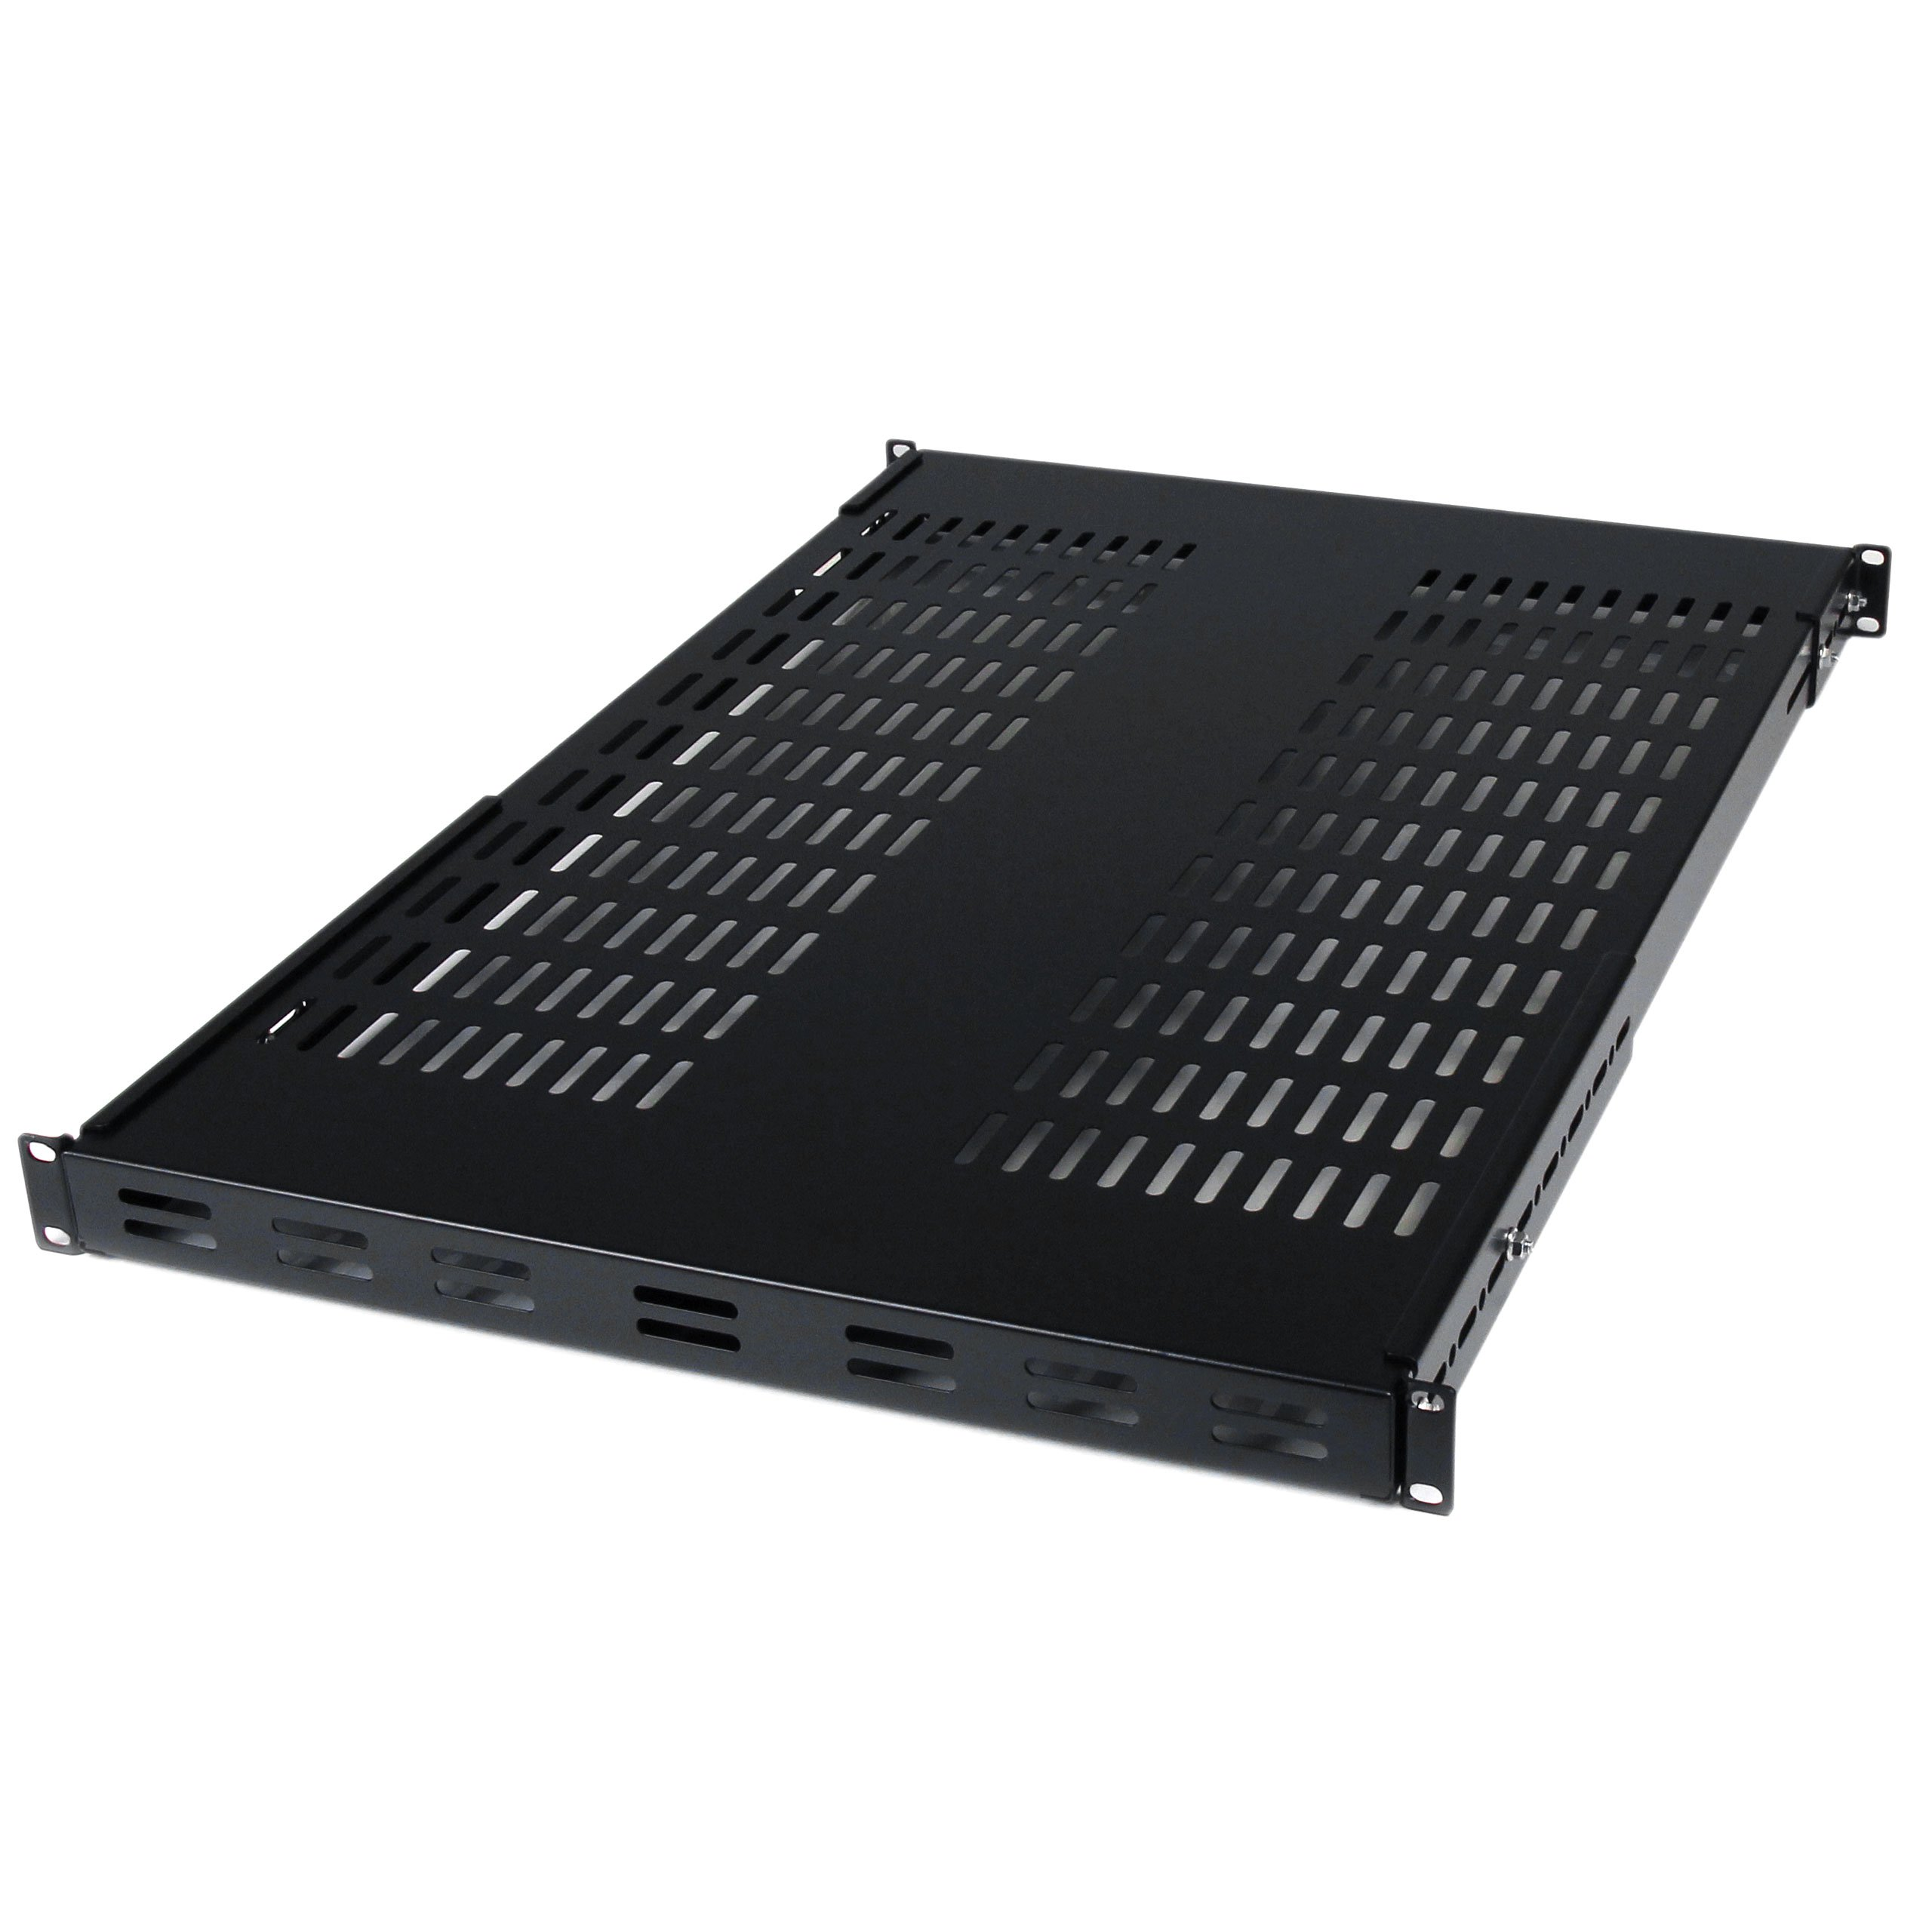 StarTech.com ADJSHELF 1U Adjustable Mounting Depth Vented Rack Mount Shelf - 175lbs / 80kg - Fixed Server Rack Shelf by StarTech